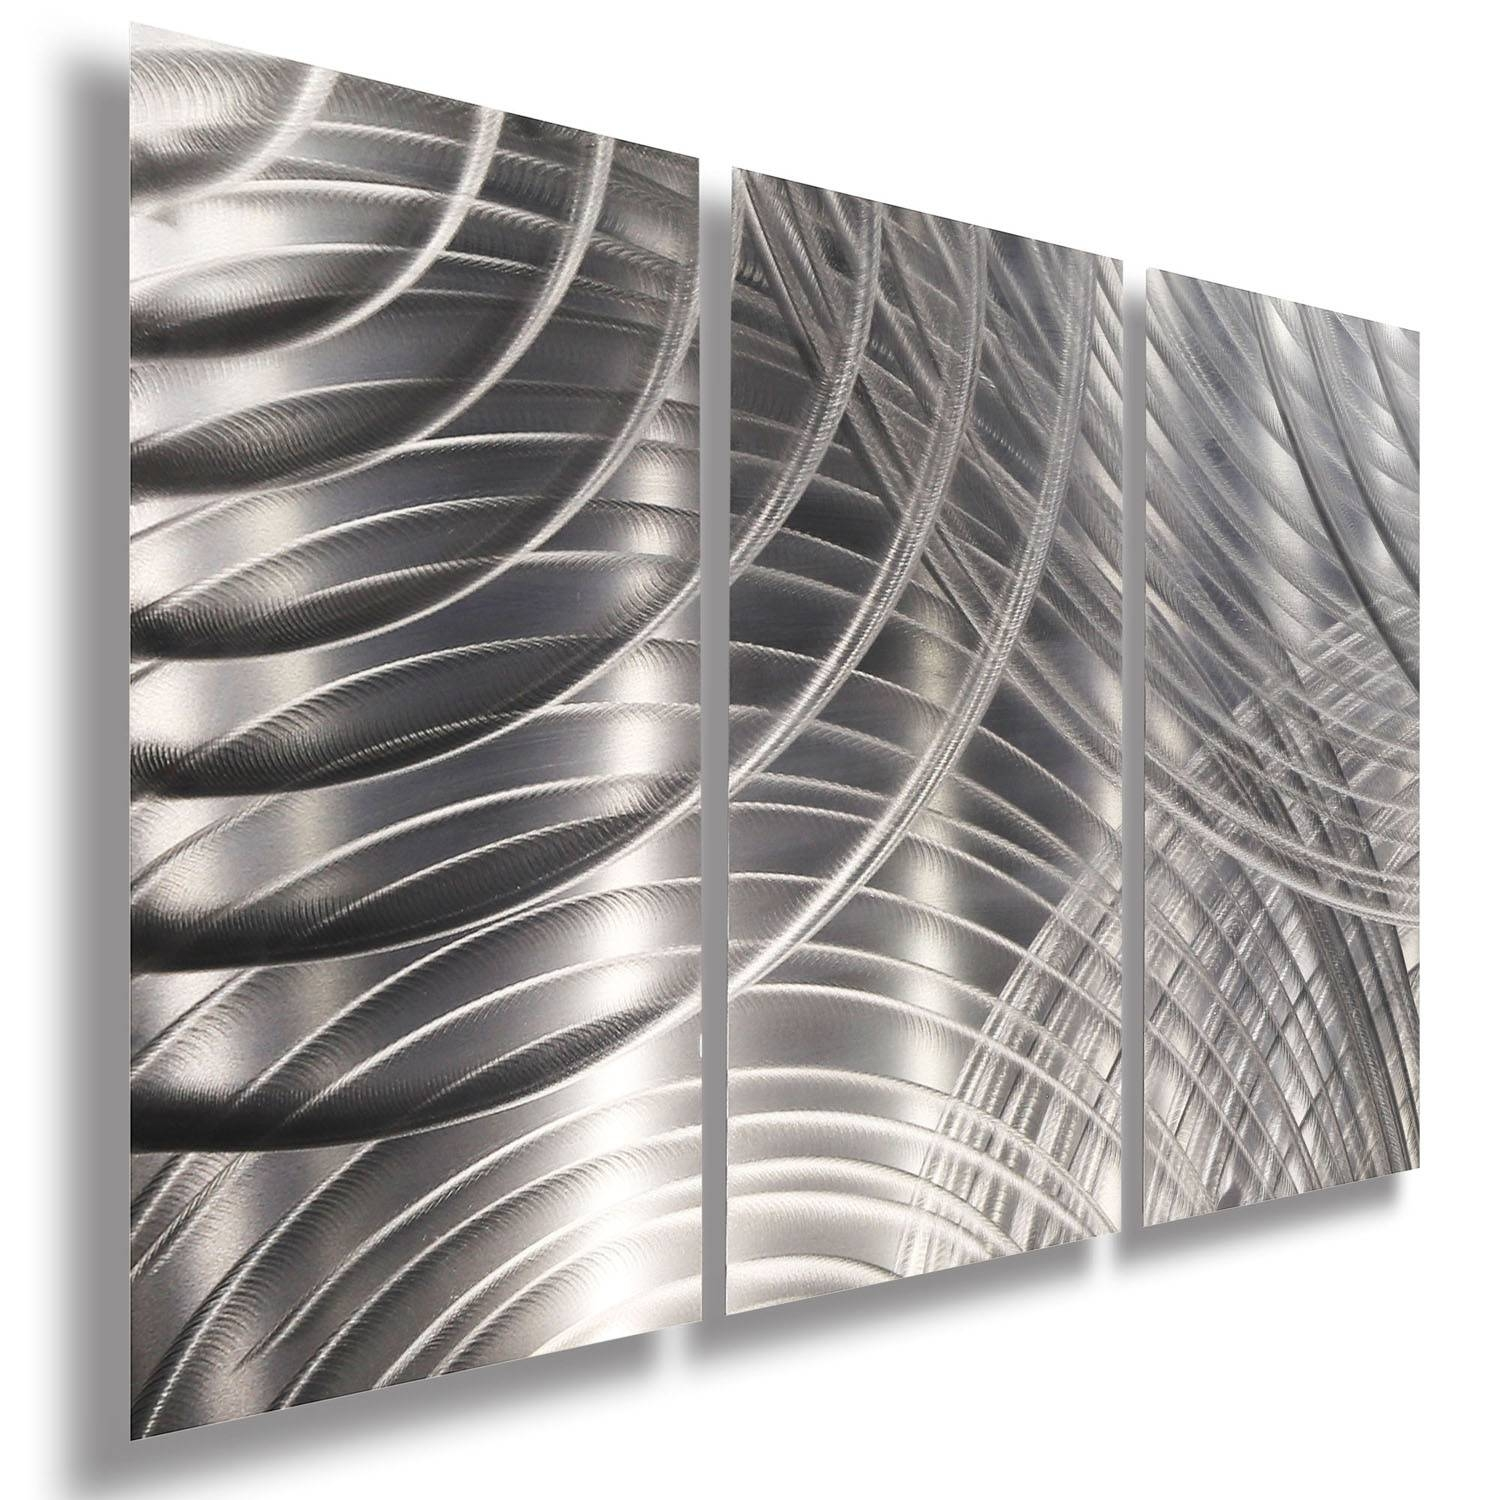 Equinox Ii 3P – All Silver 3 Panel Metal Wall Art Accentjon Intended For Recent Silver Metal Wall Art (View 2 of 20)